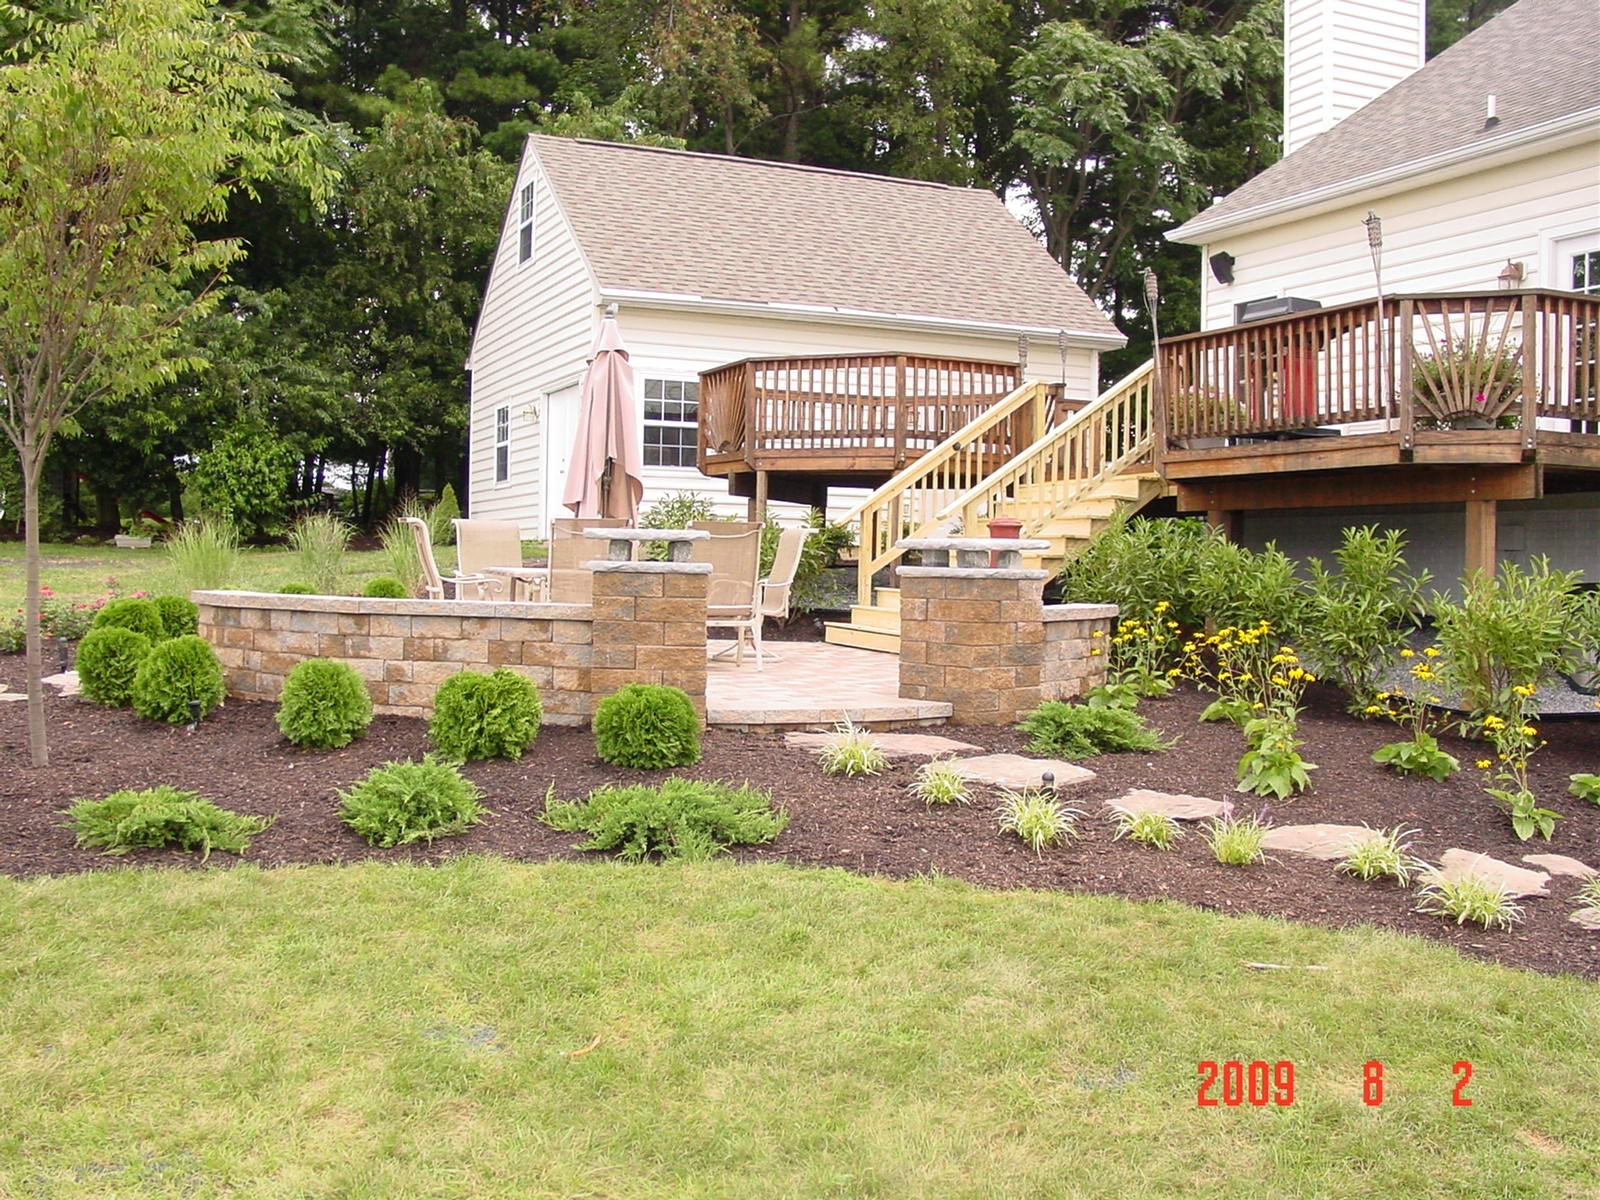 Landscape hardscape design build west friendship md for Landscape design build